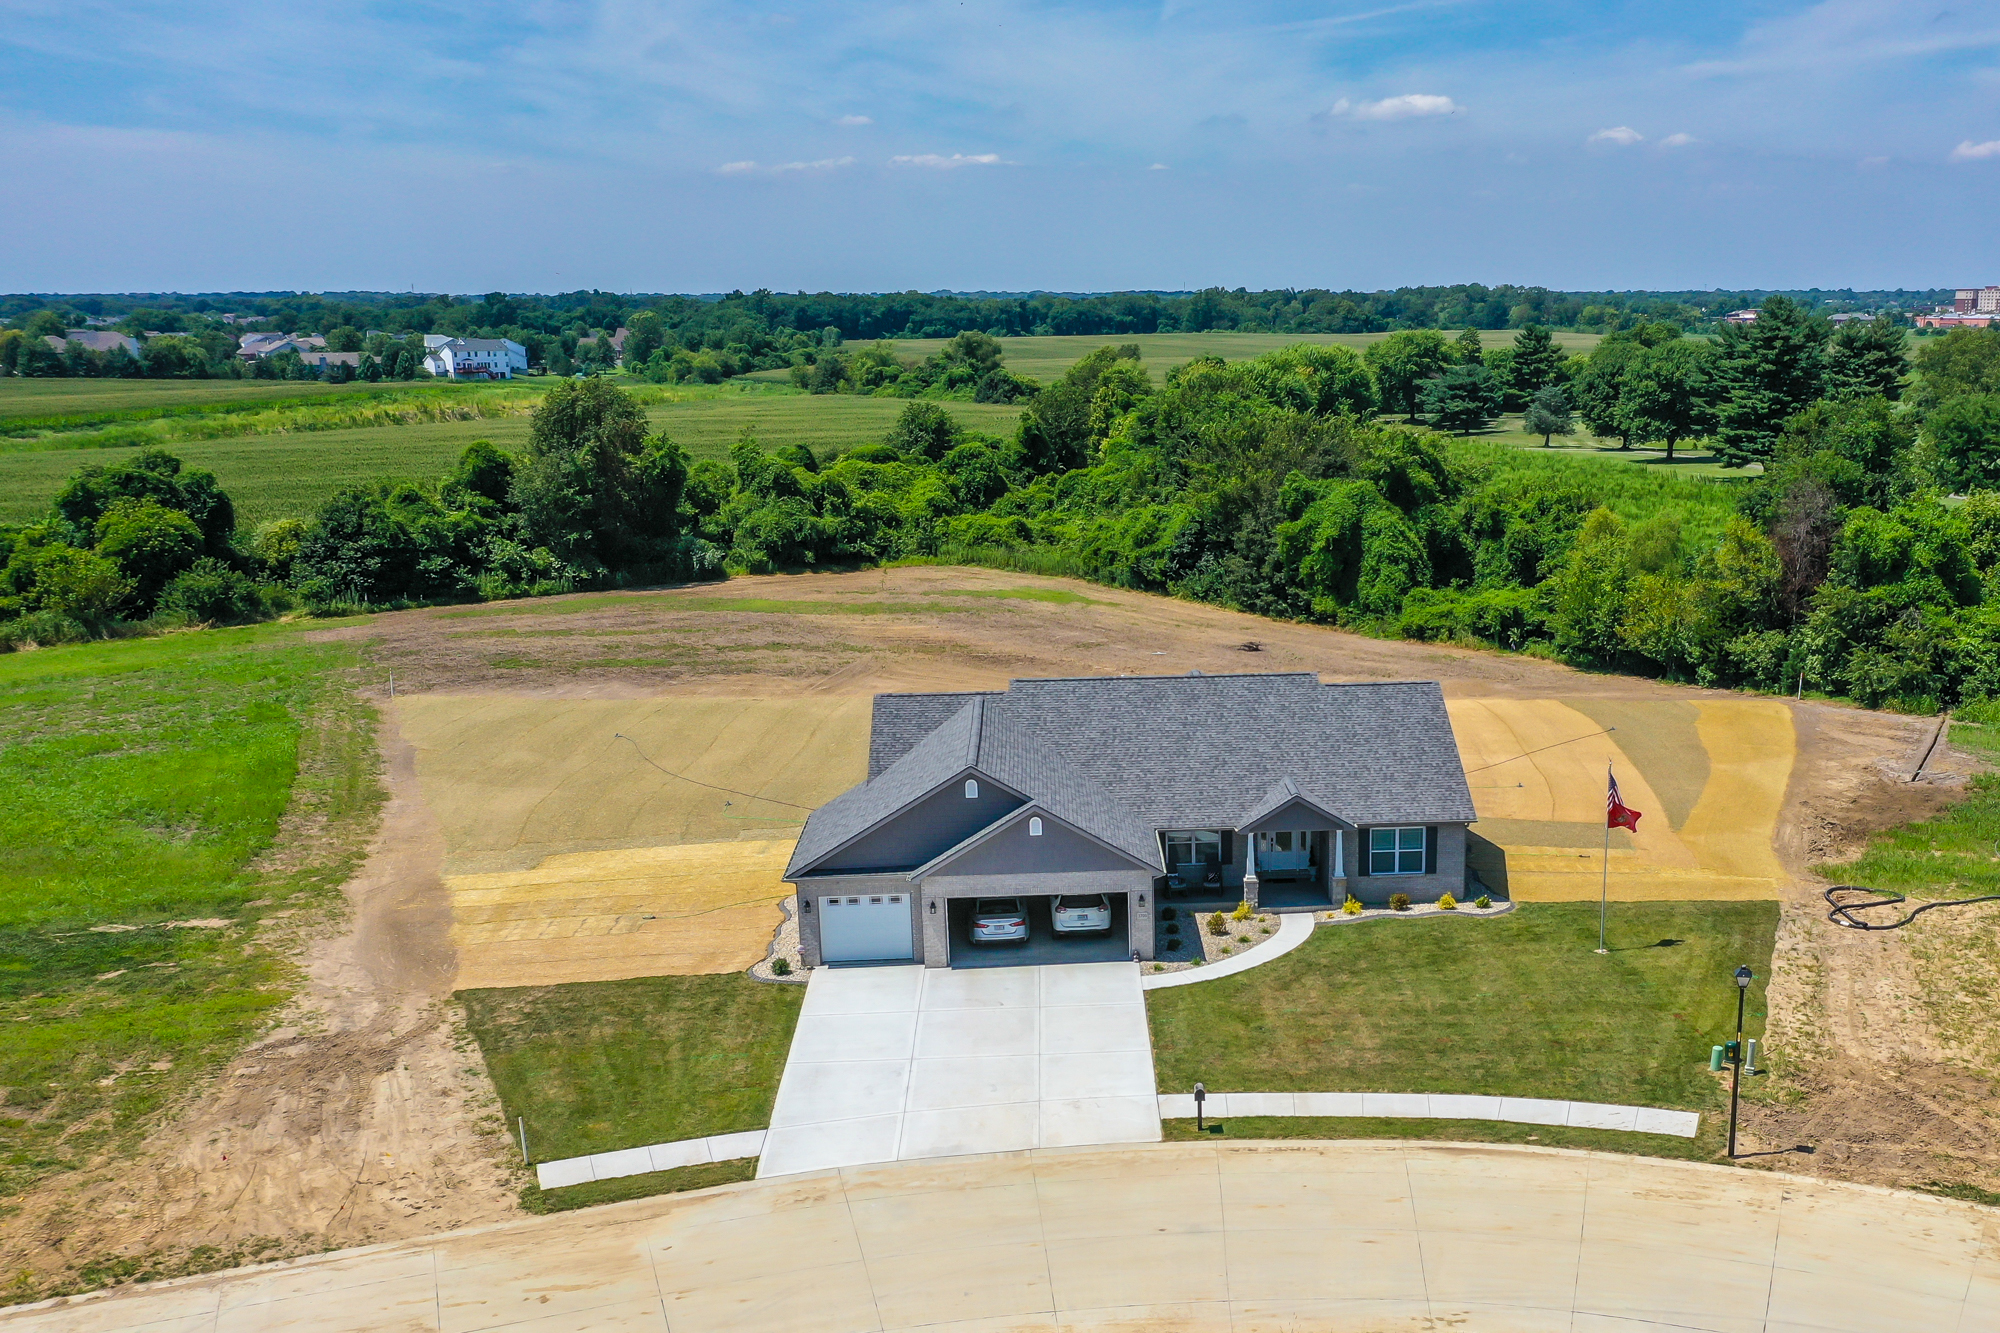 New_Construction_Homes_For_Sale_Shiloh_Illinois_Near_Scott_AFB-21.jpg